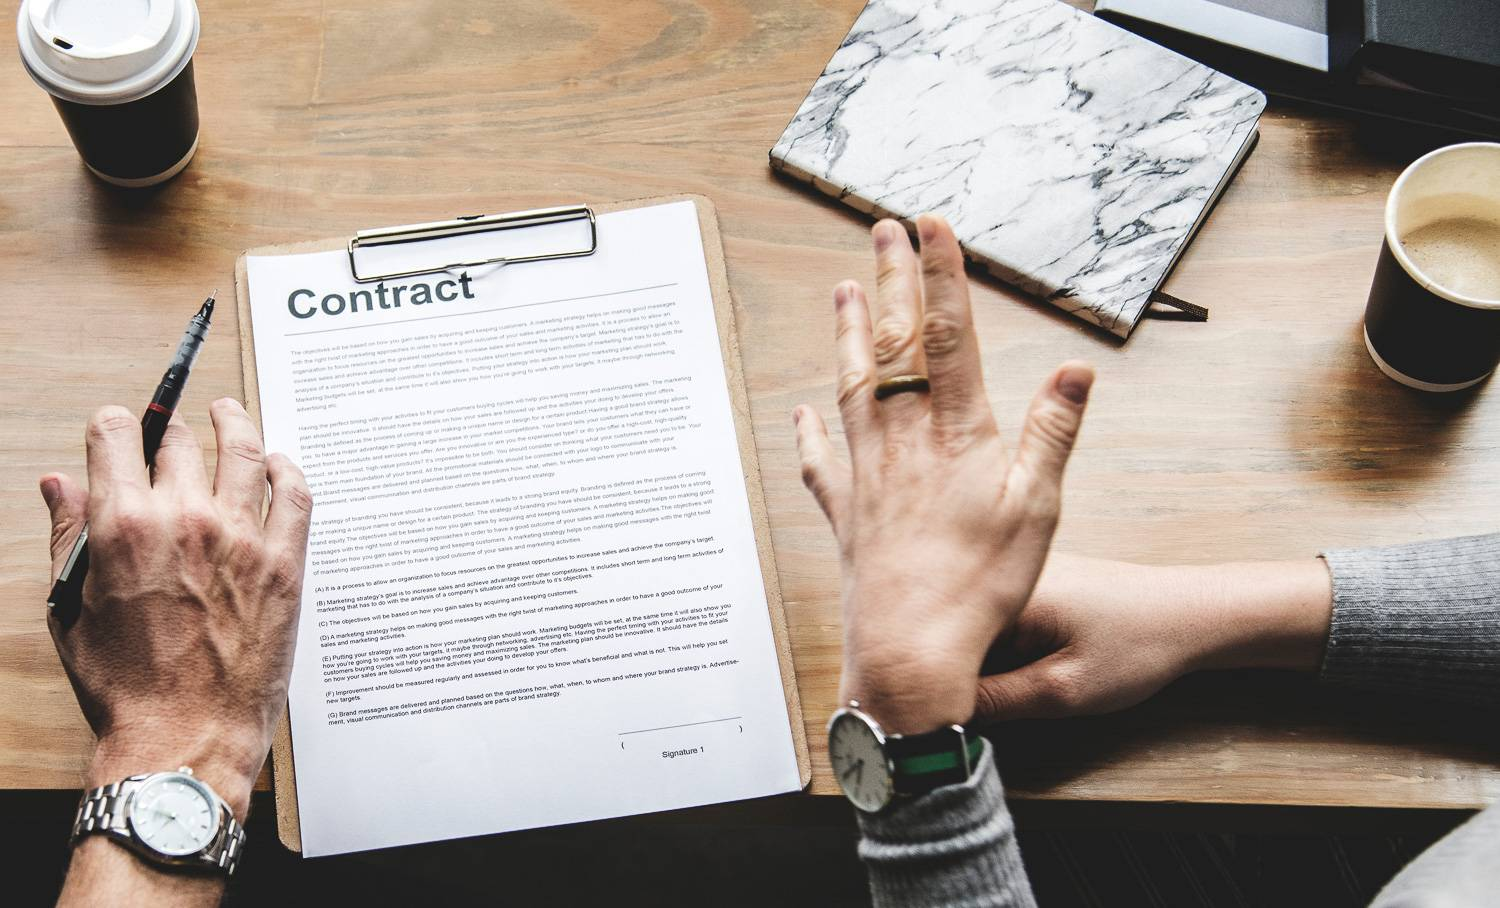 Image of two people's hands in the middle of a discussion over a rental contract.